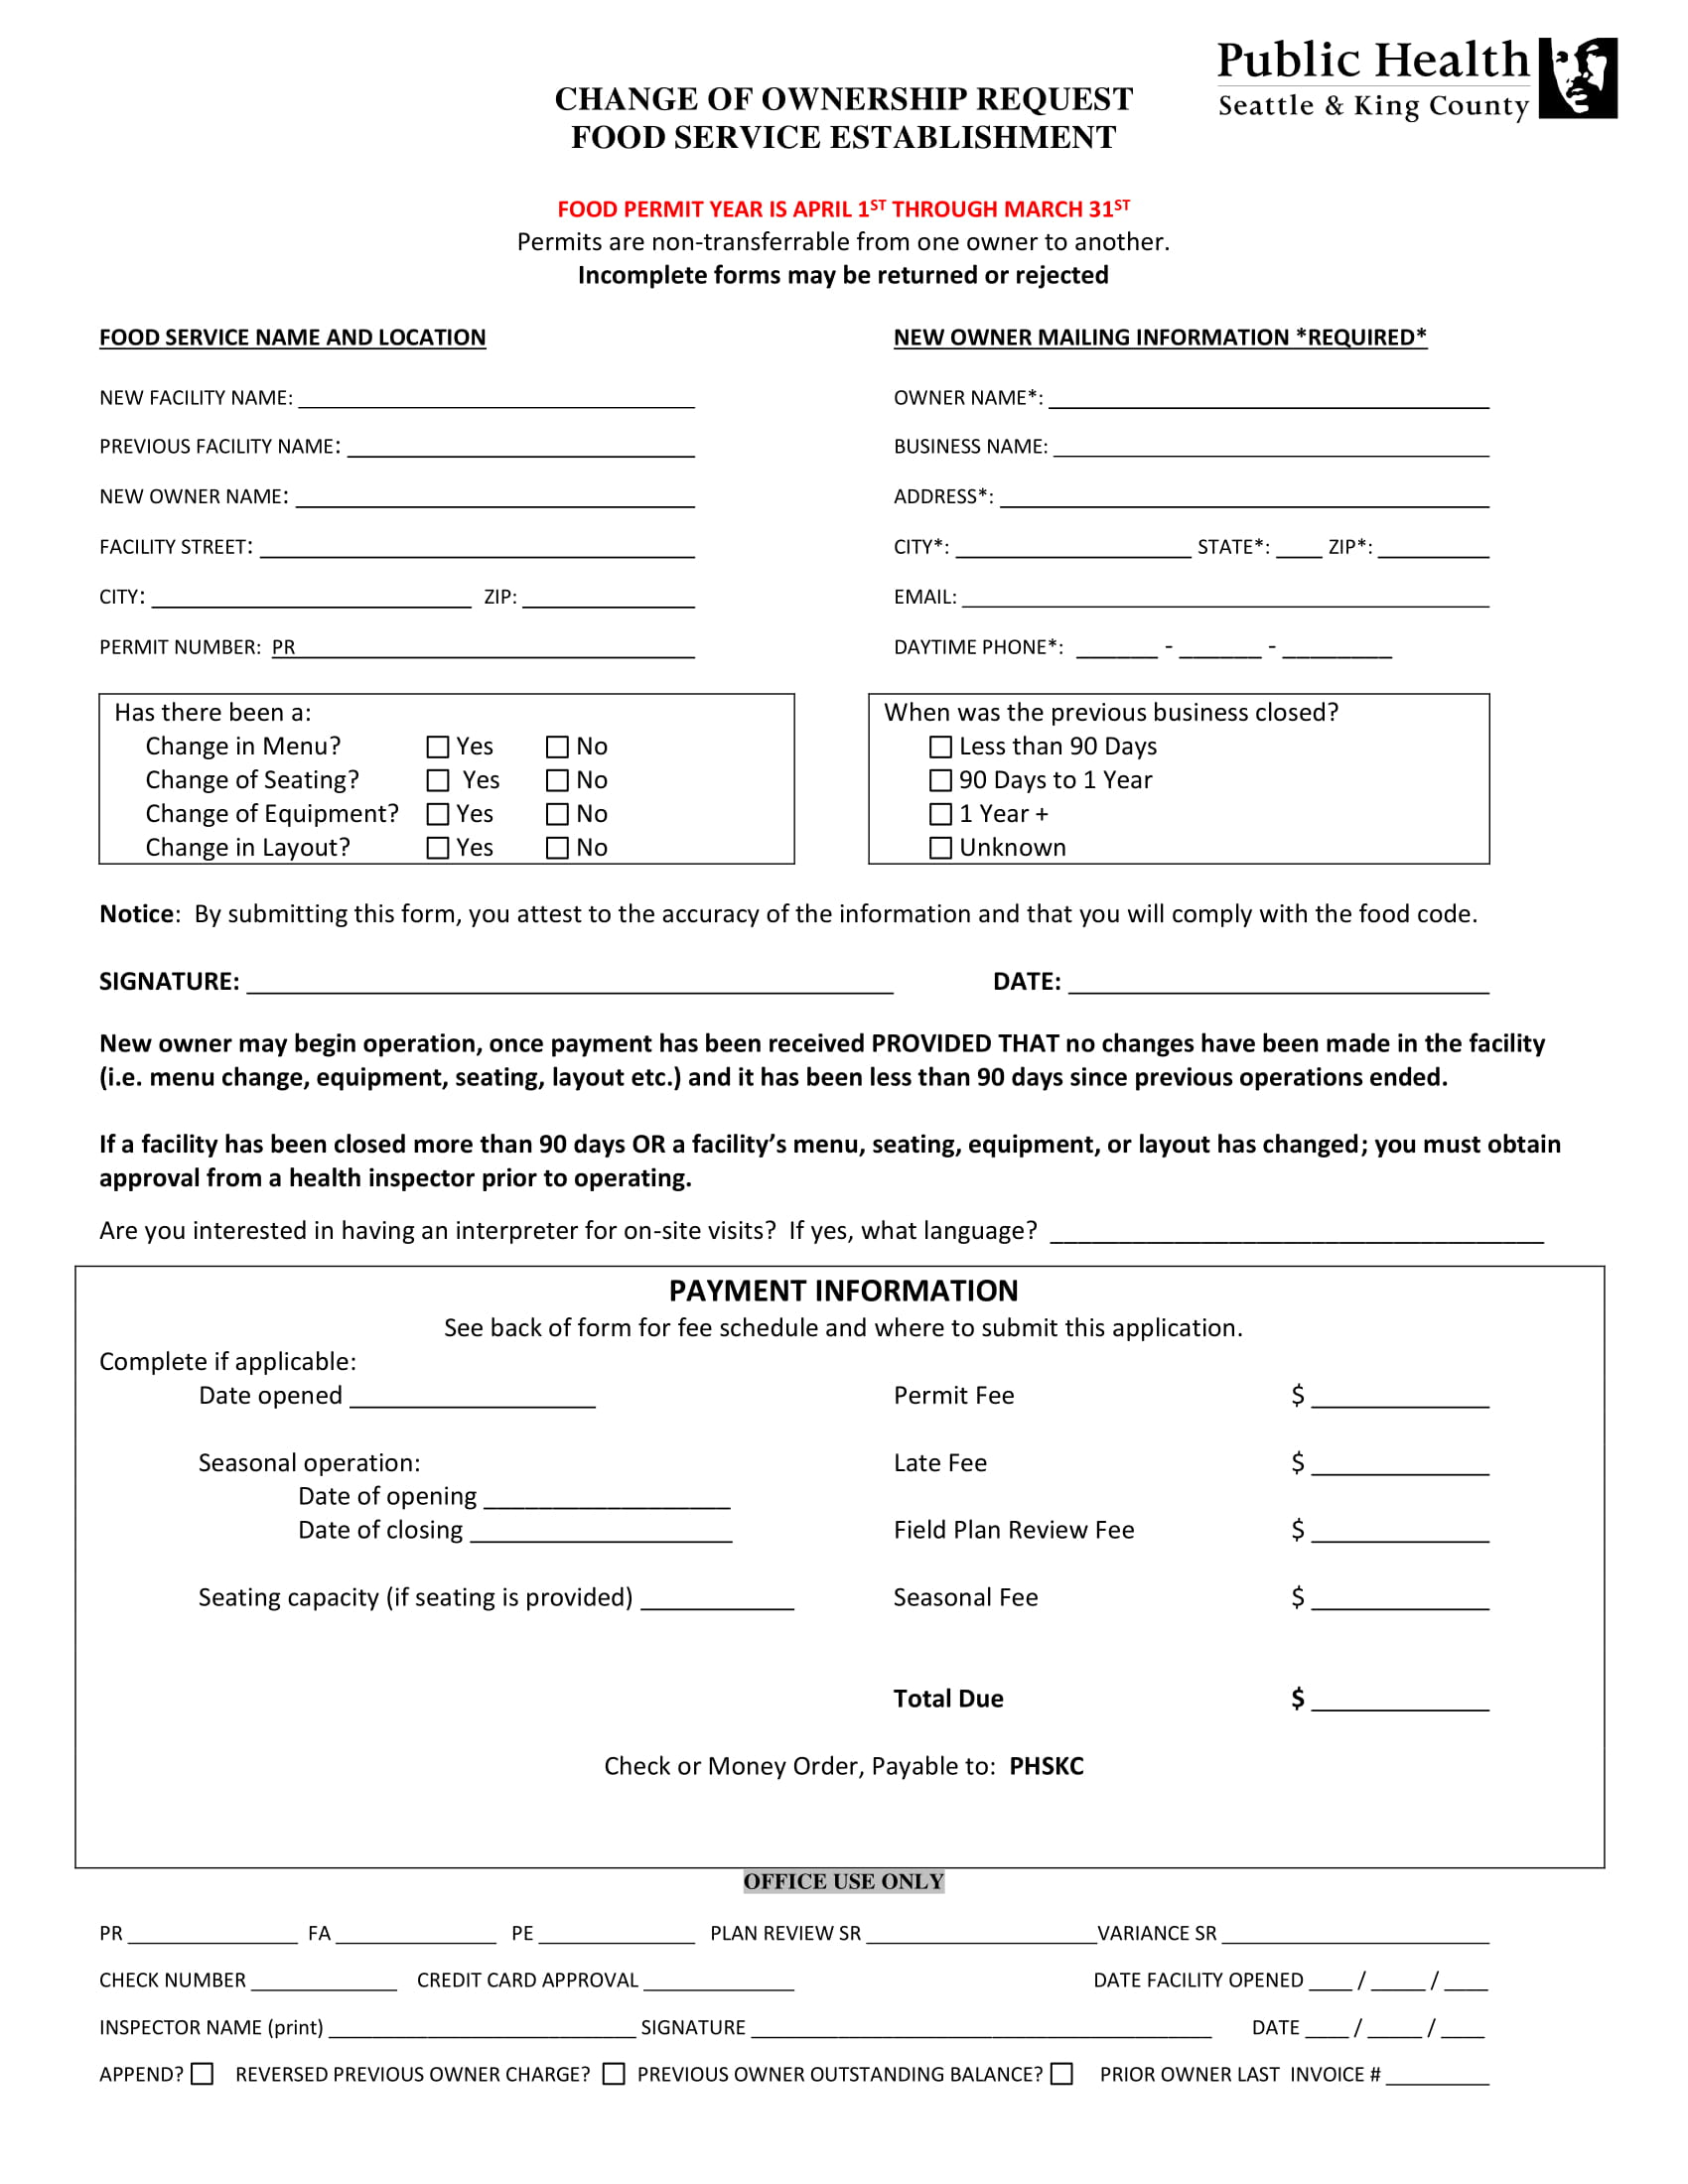 food service establishment change of ownership request form 1